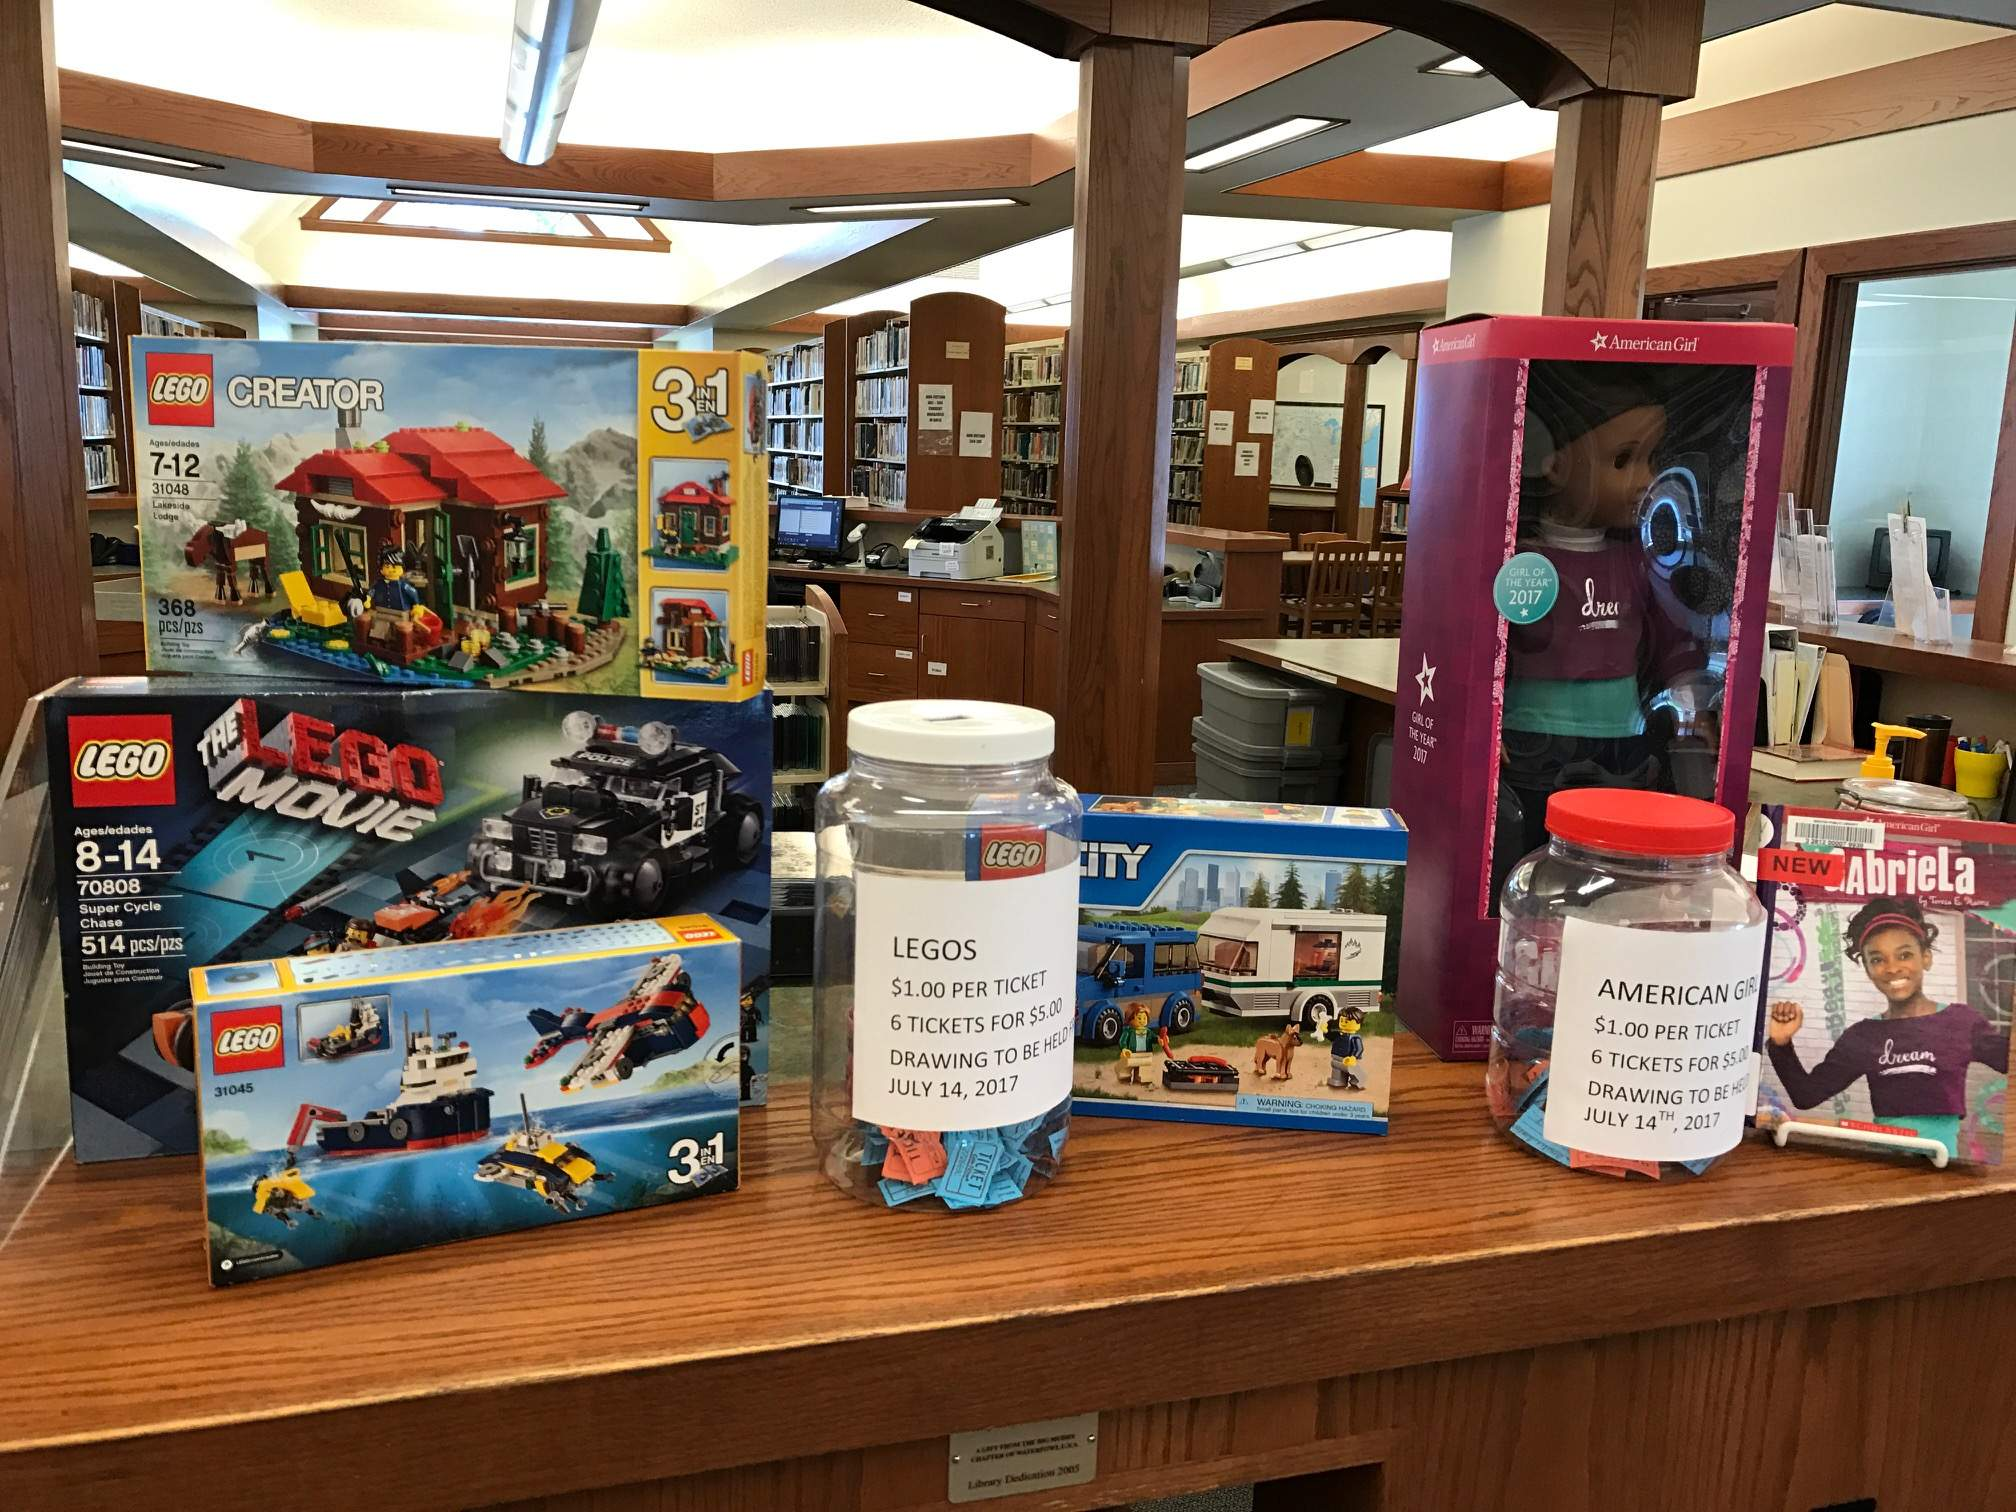 The latest raffle at the Benton Public Library features Legos and Gabriela, the newest American Girl doll.  Tickets are $1 each or six for $5. The drawing will be held July 14.